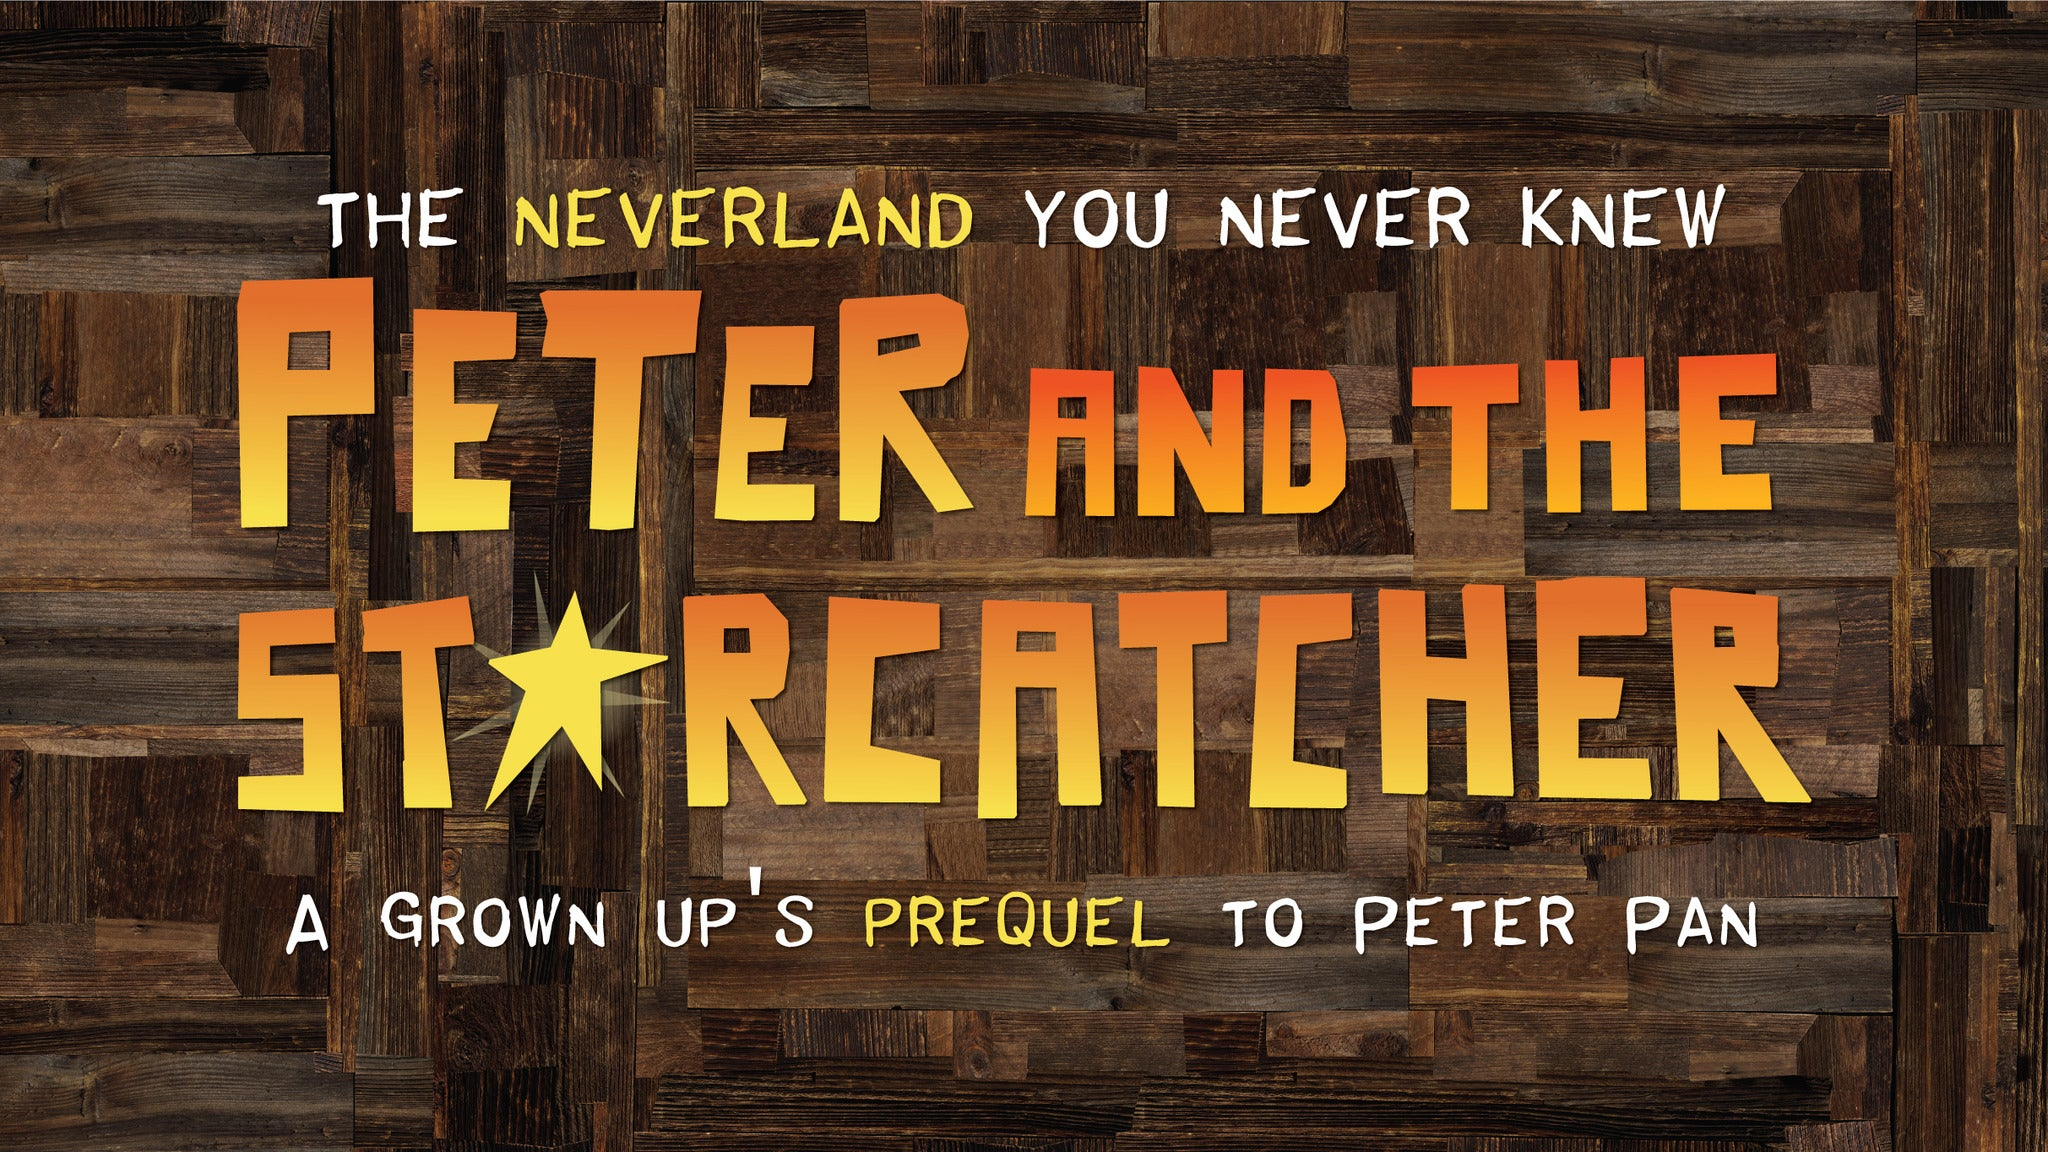 Peter and the Starcatcher at Angus Bowmer Theatre